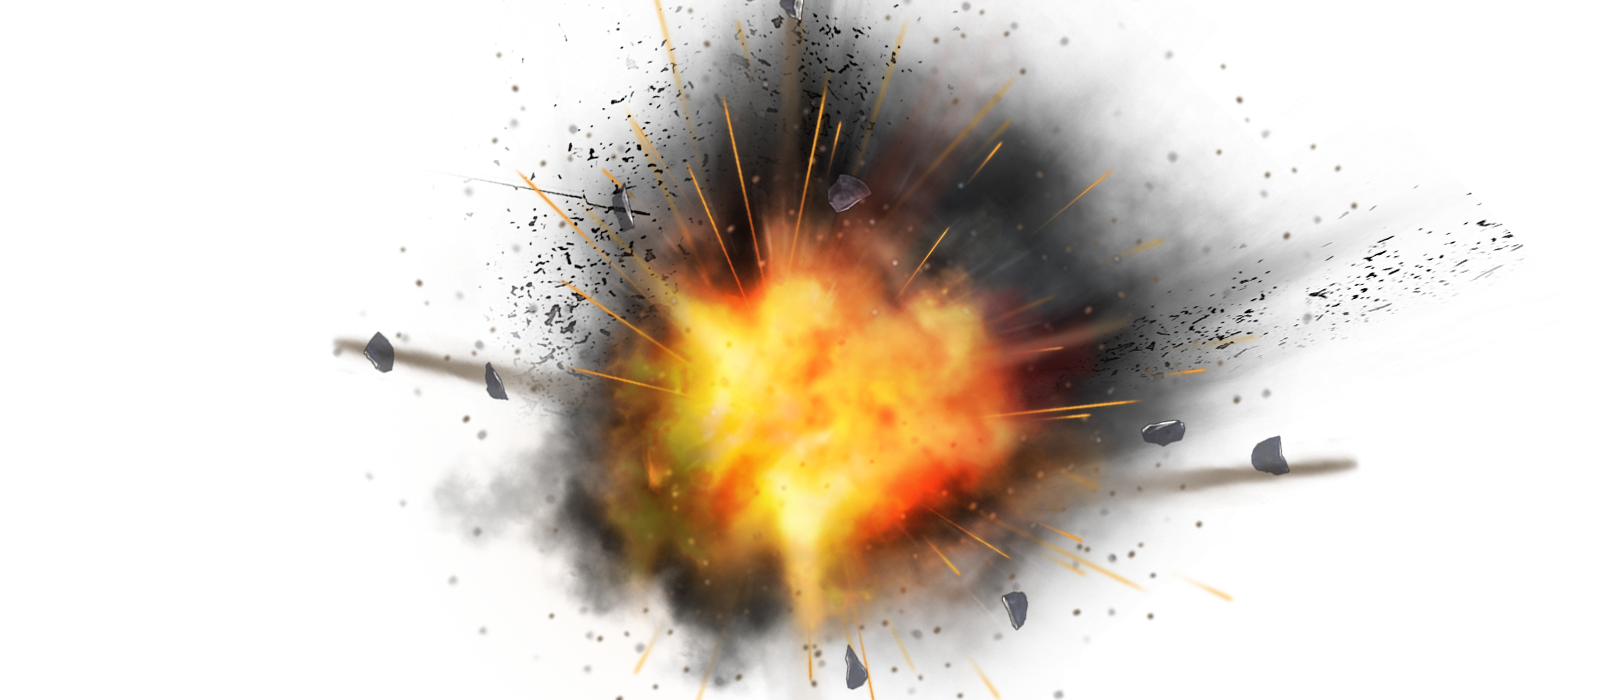 Free download of Explosion High Quality PNG